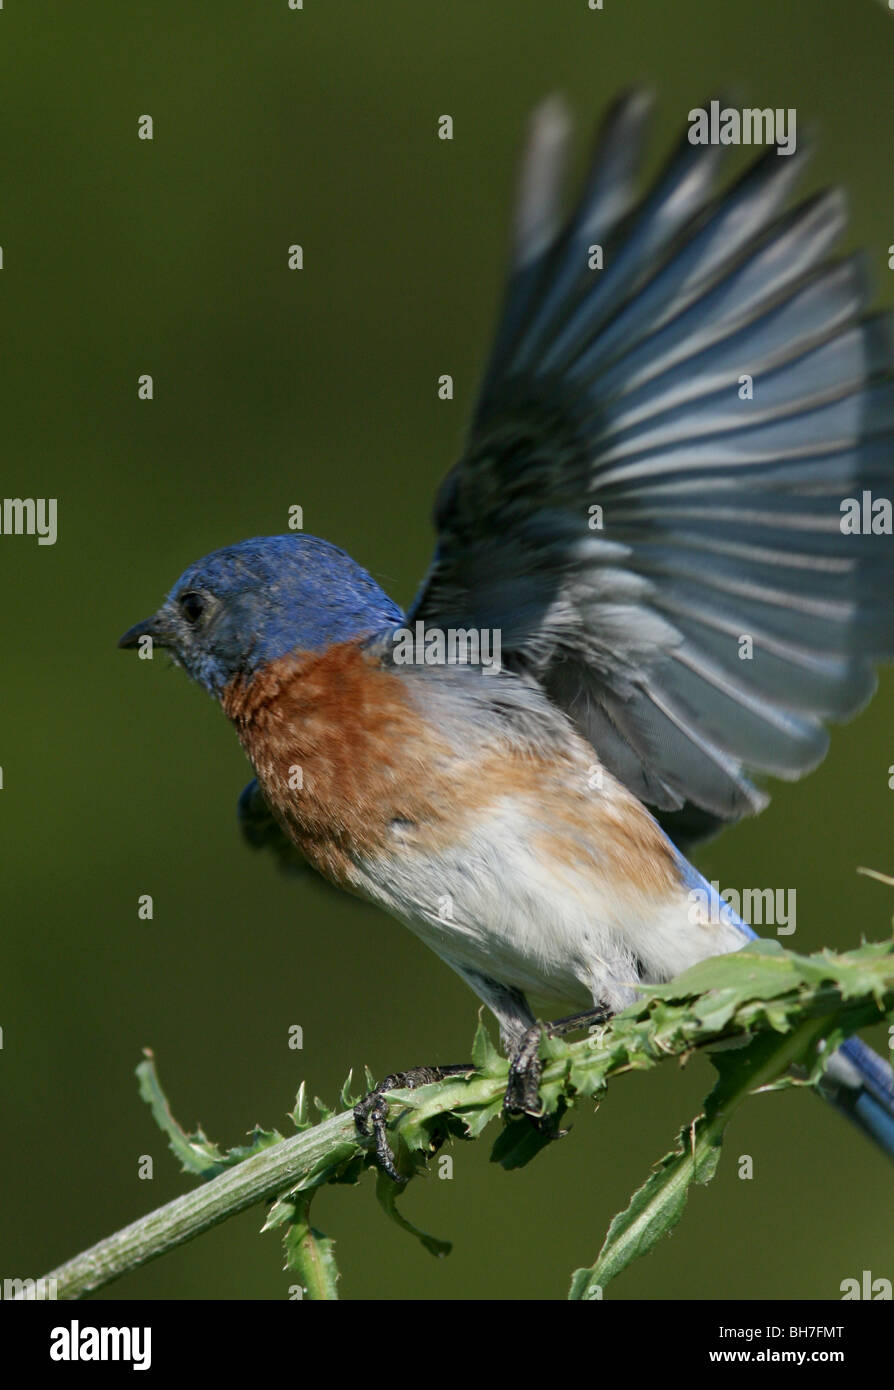 eastern bluebird male fly flap colorful songbird song bird blue kentucky usa america united states feed food insect - Stock Image